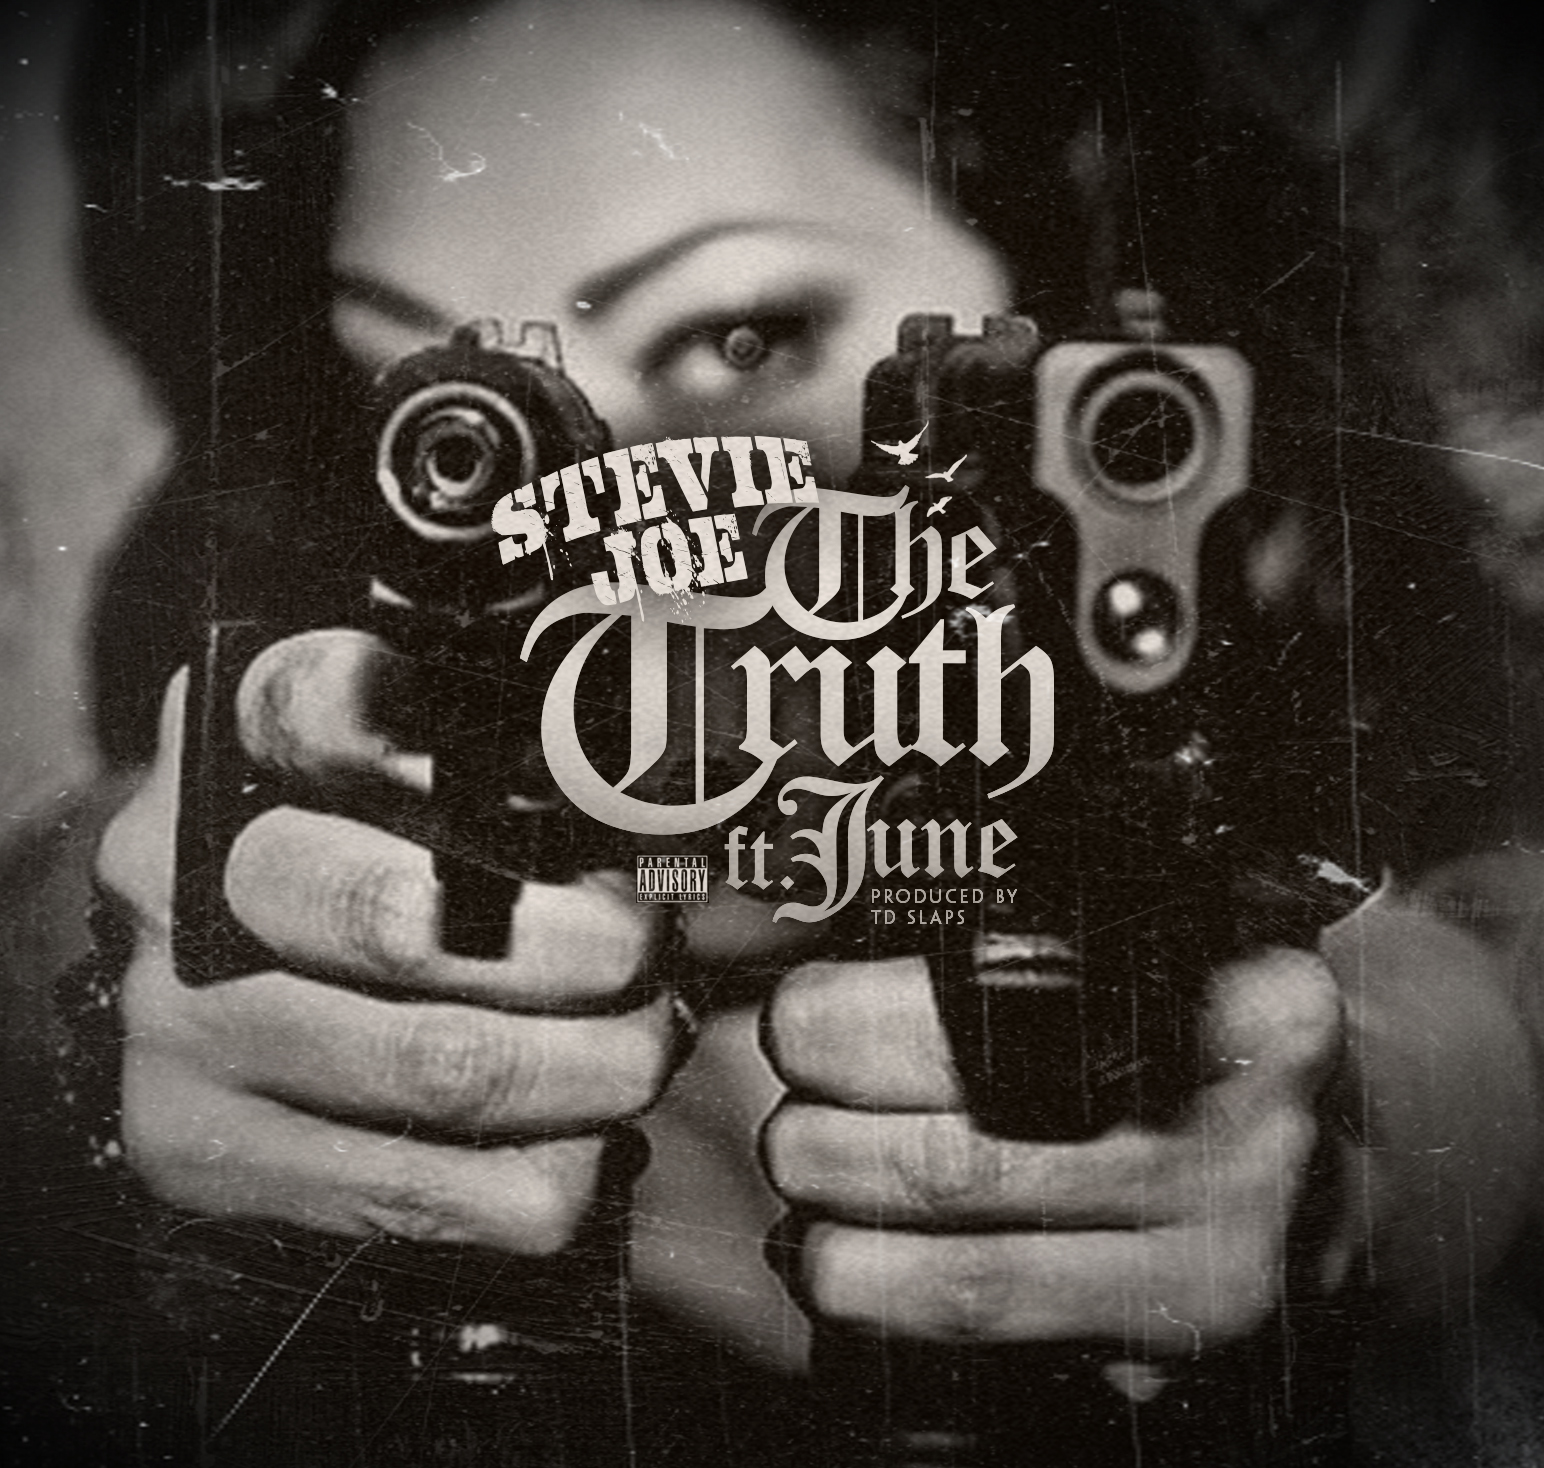 Stevie Joe ft June - The Truth (Produced by TD Slaps) [Thizzler.com Exclusive]